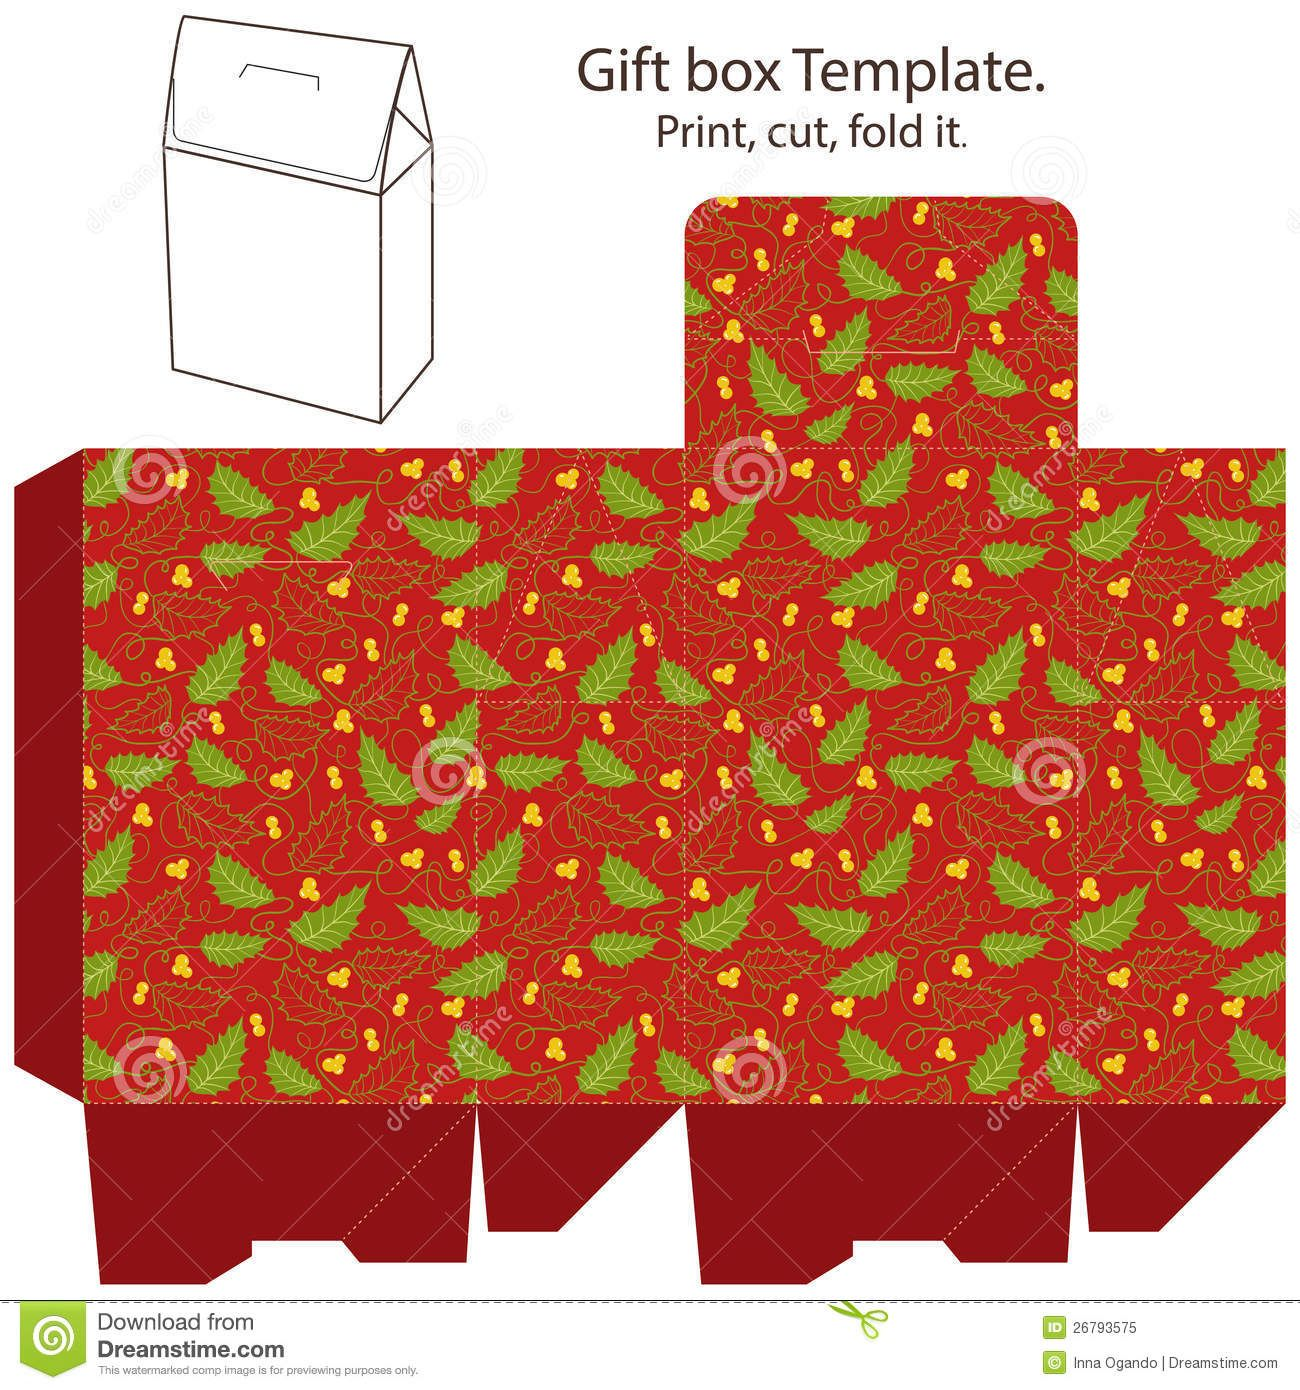 Gift box template stock vector. Image of package, packaging ...